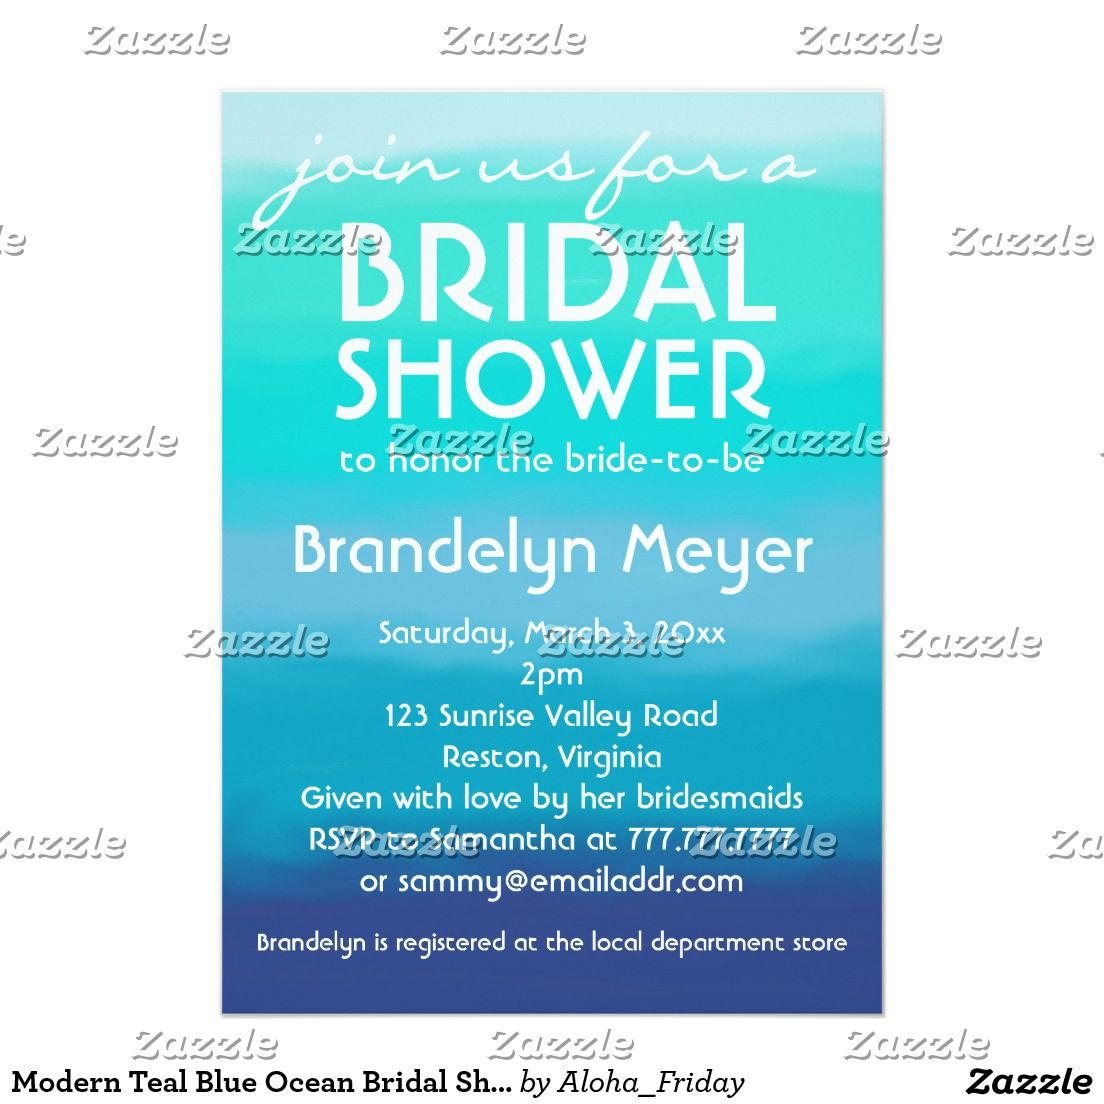 Modern Teal Blue Ocean Bridal Shower Invitations This stylish modern design features an ocean watercolor background with shades of blue and teal. Personalize the details of this invite with your bridal shower party. There is also plenty of space on the back for information. Simply click on the Customize It button to add text.